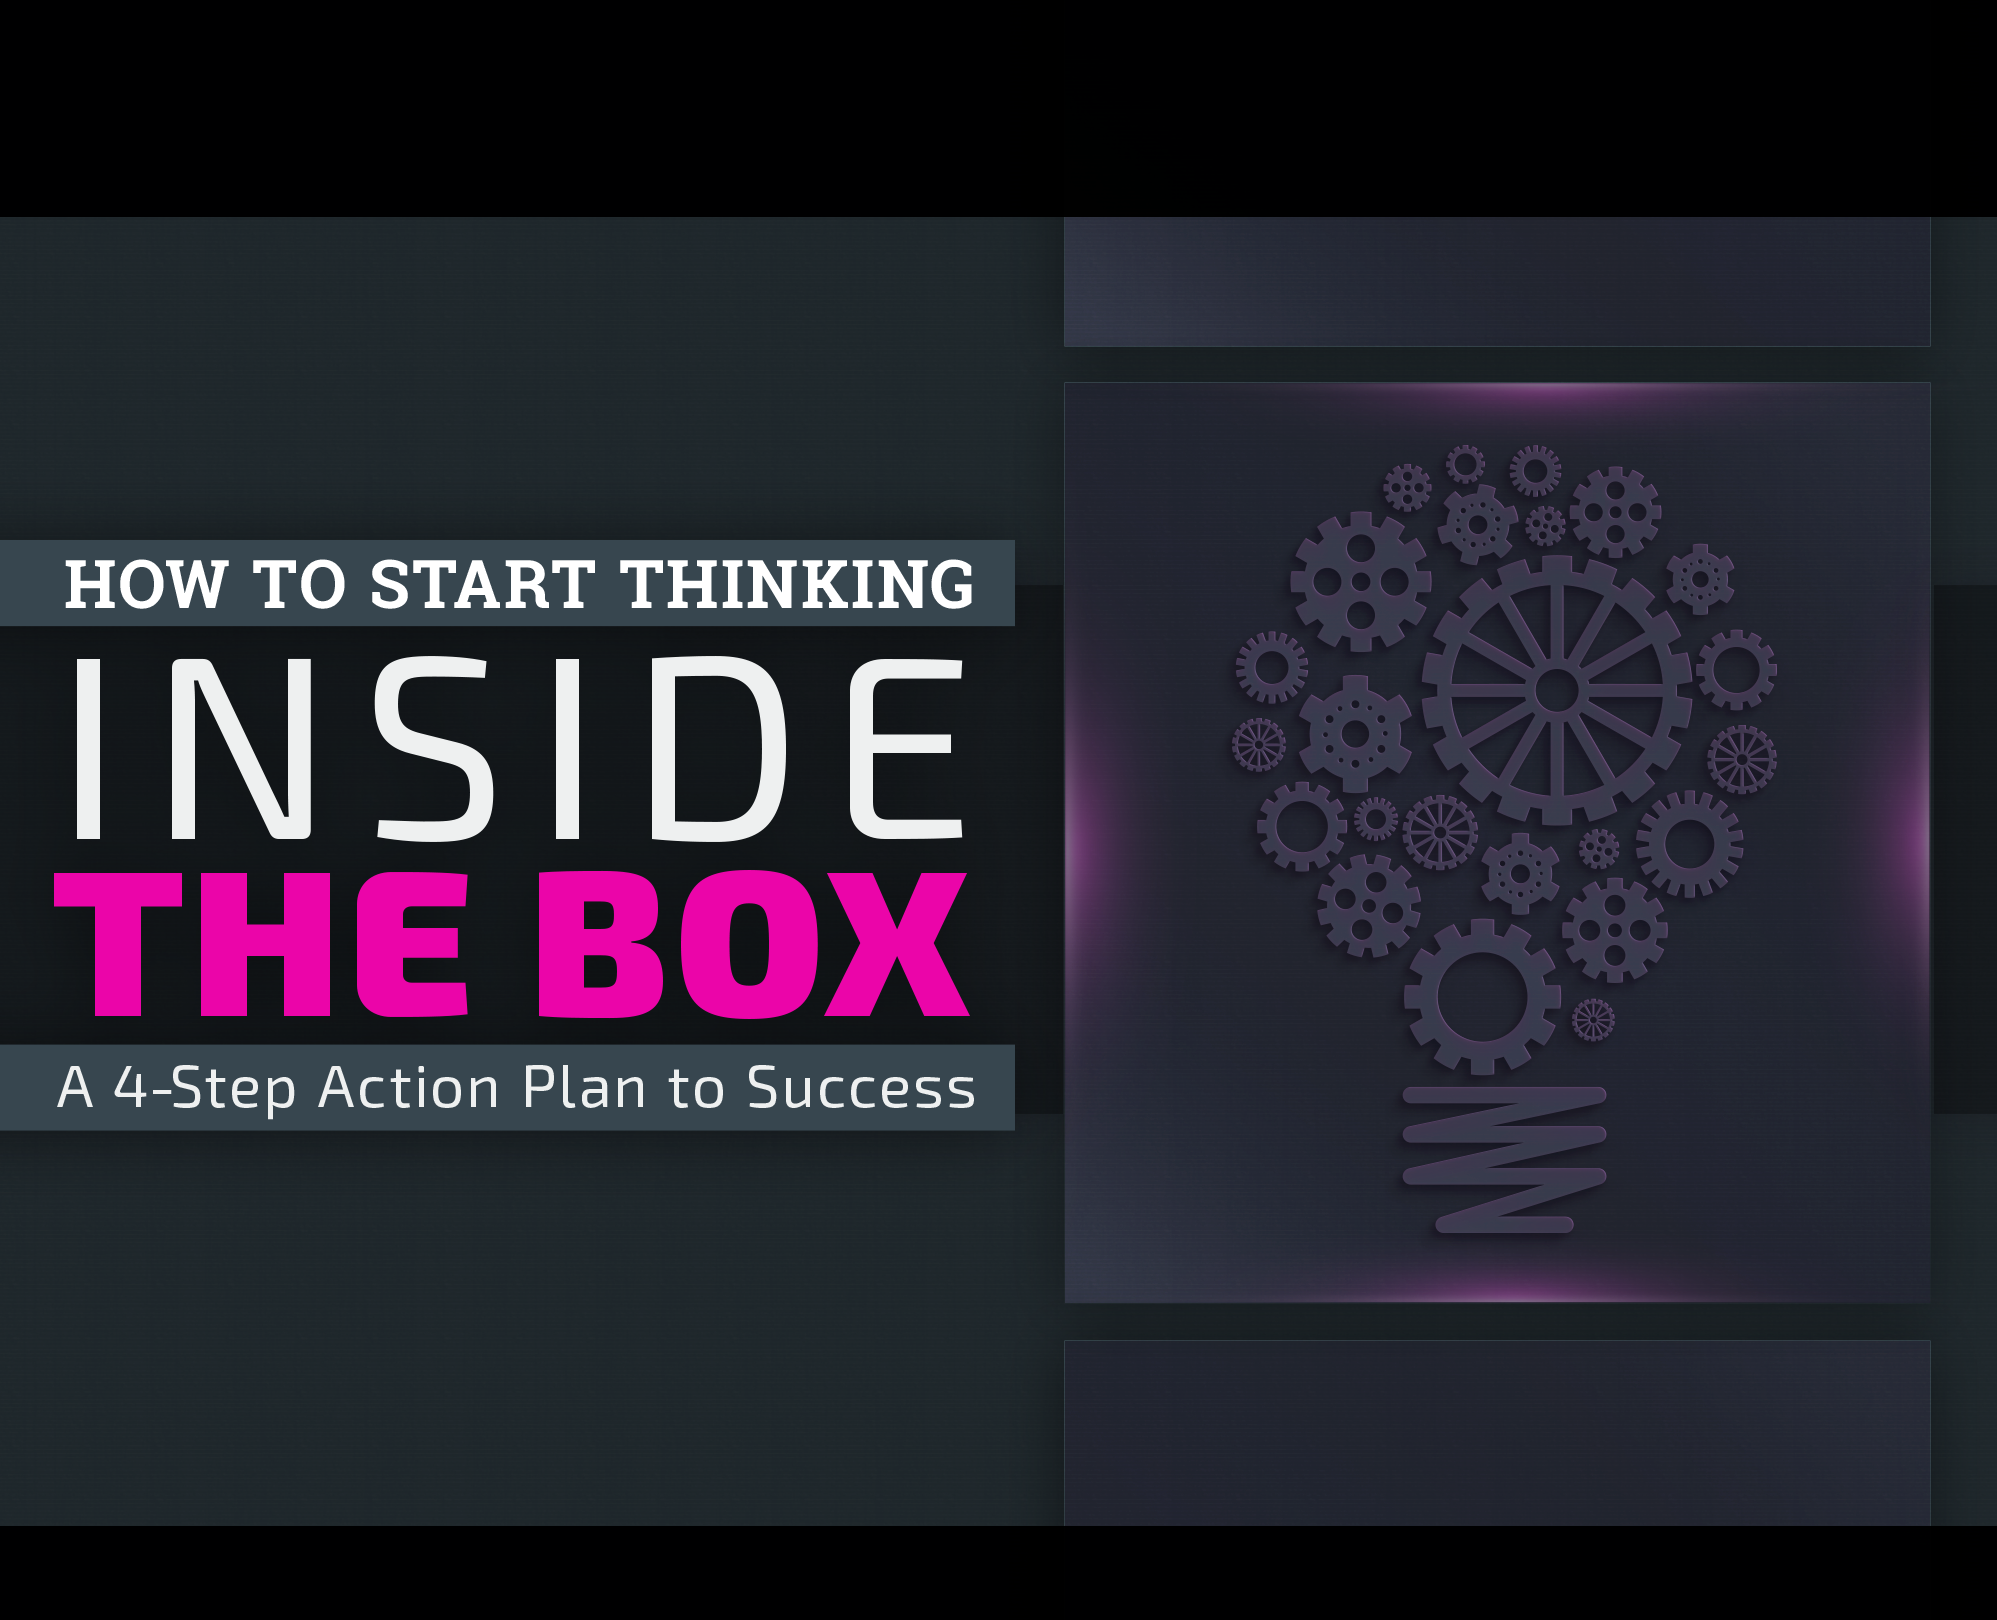 How to Start Thinking Inside the Box